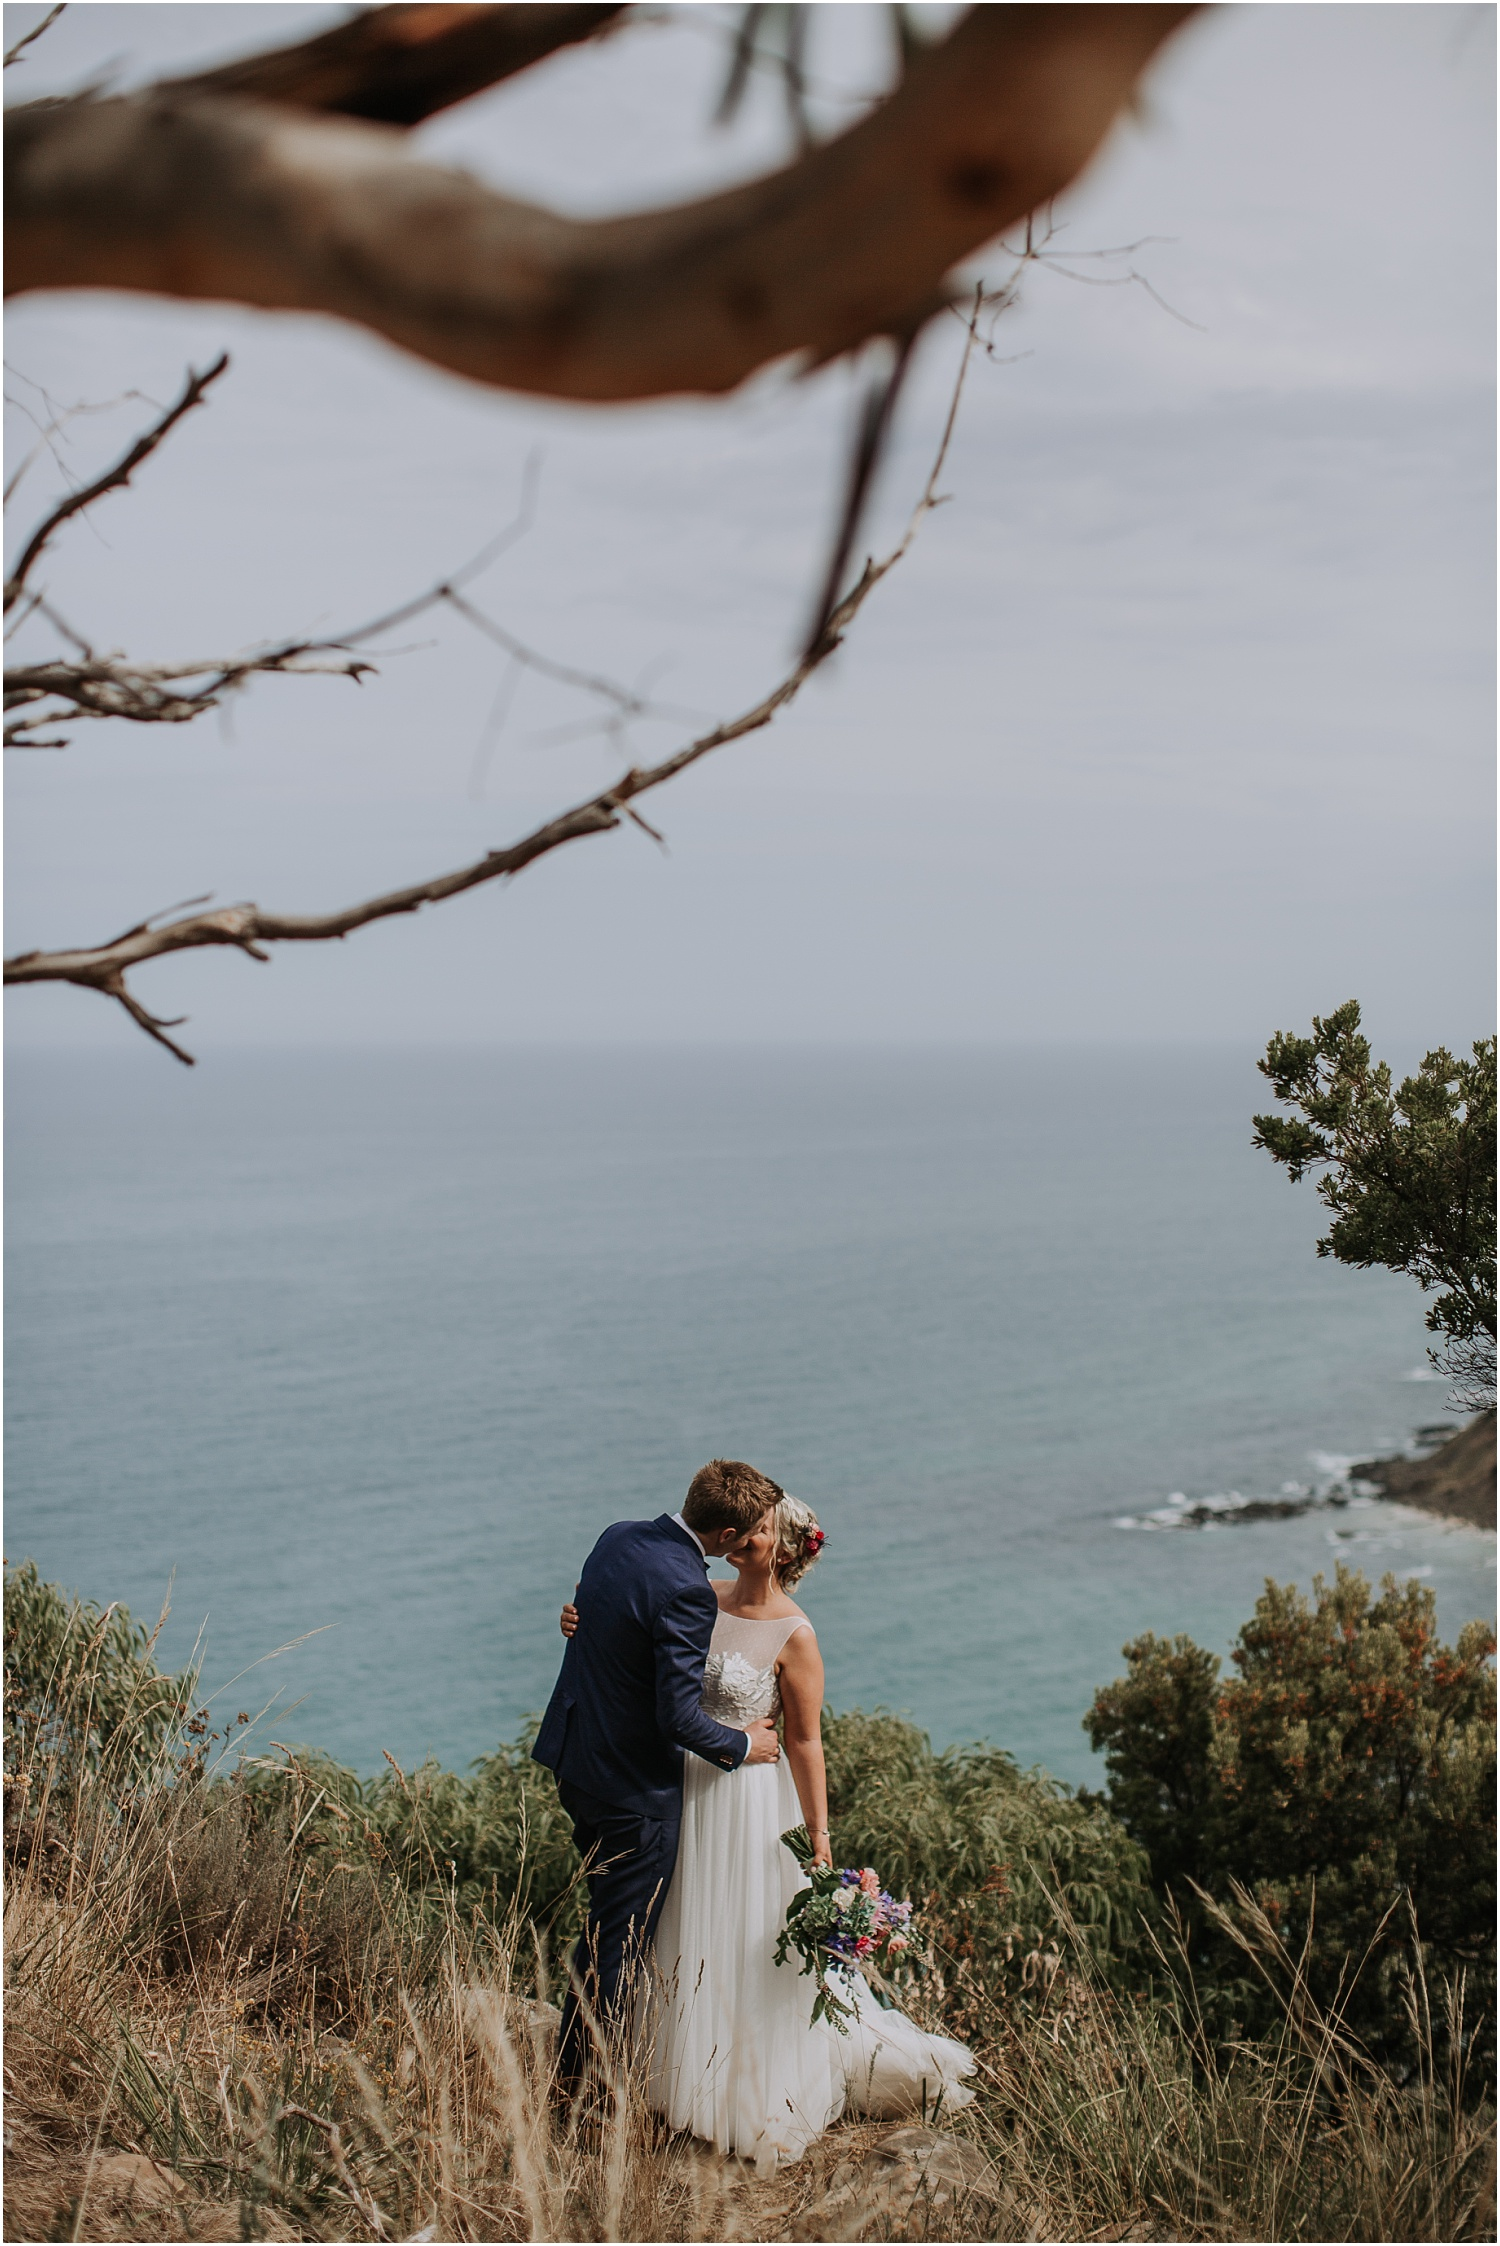 Ainslee and Warwick's elopement at Erskin Falls and the Lorne Beach Pavilion on the Great Ocean Road._0086.jpg